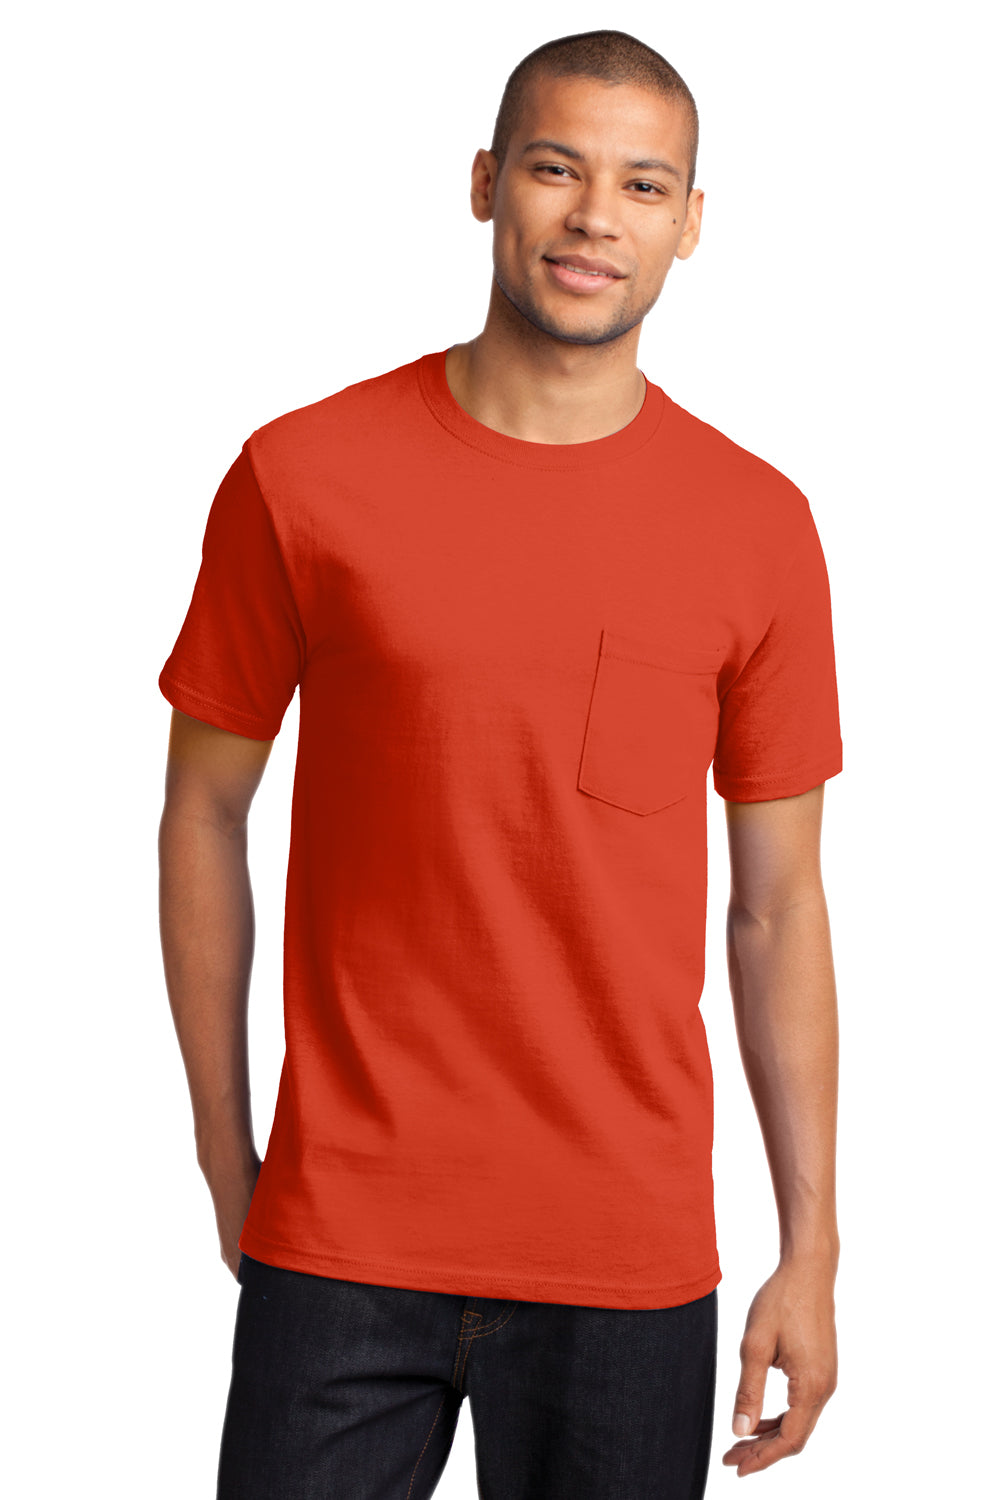 Port & Company PC61P Mens Essential Short Sleeve Crewneck T-Shirt w/ Pocket Orange Front